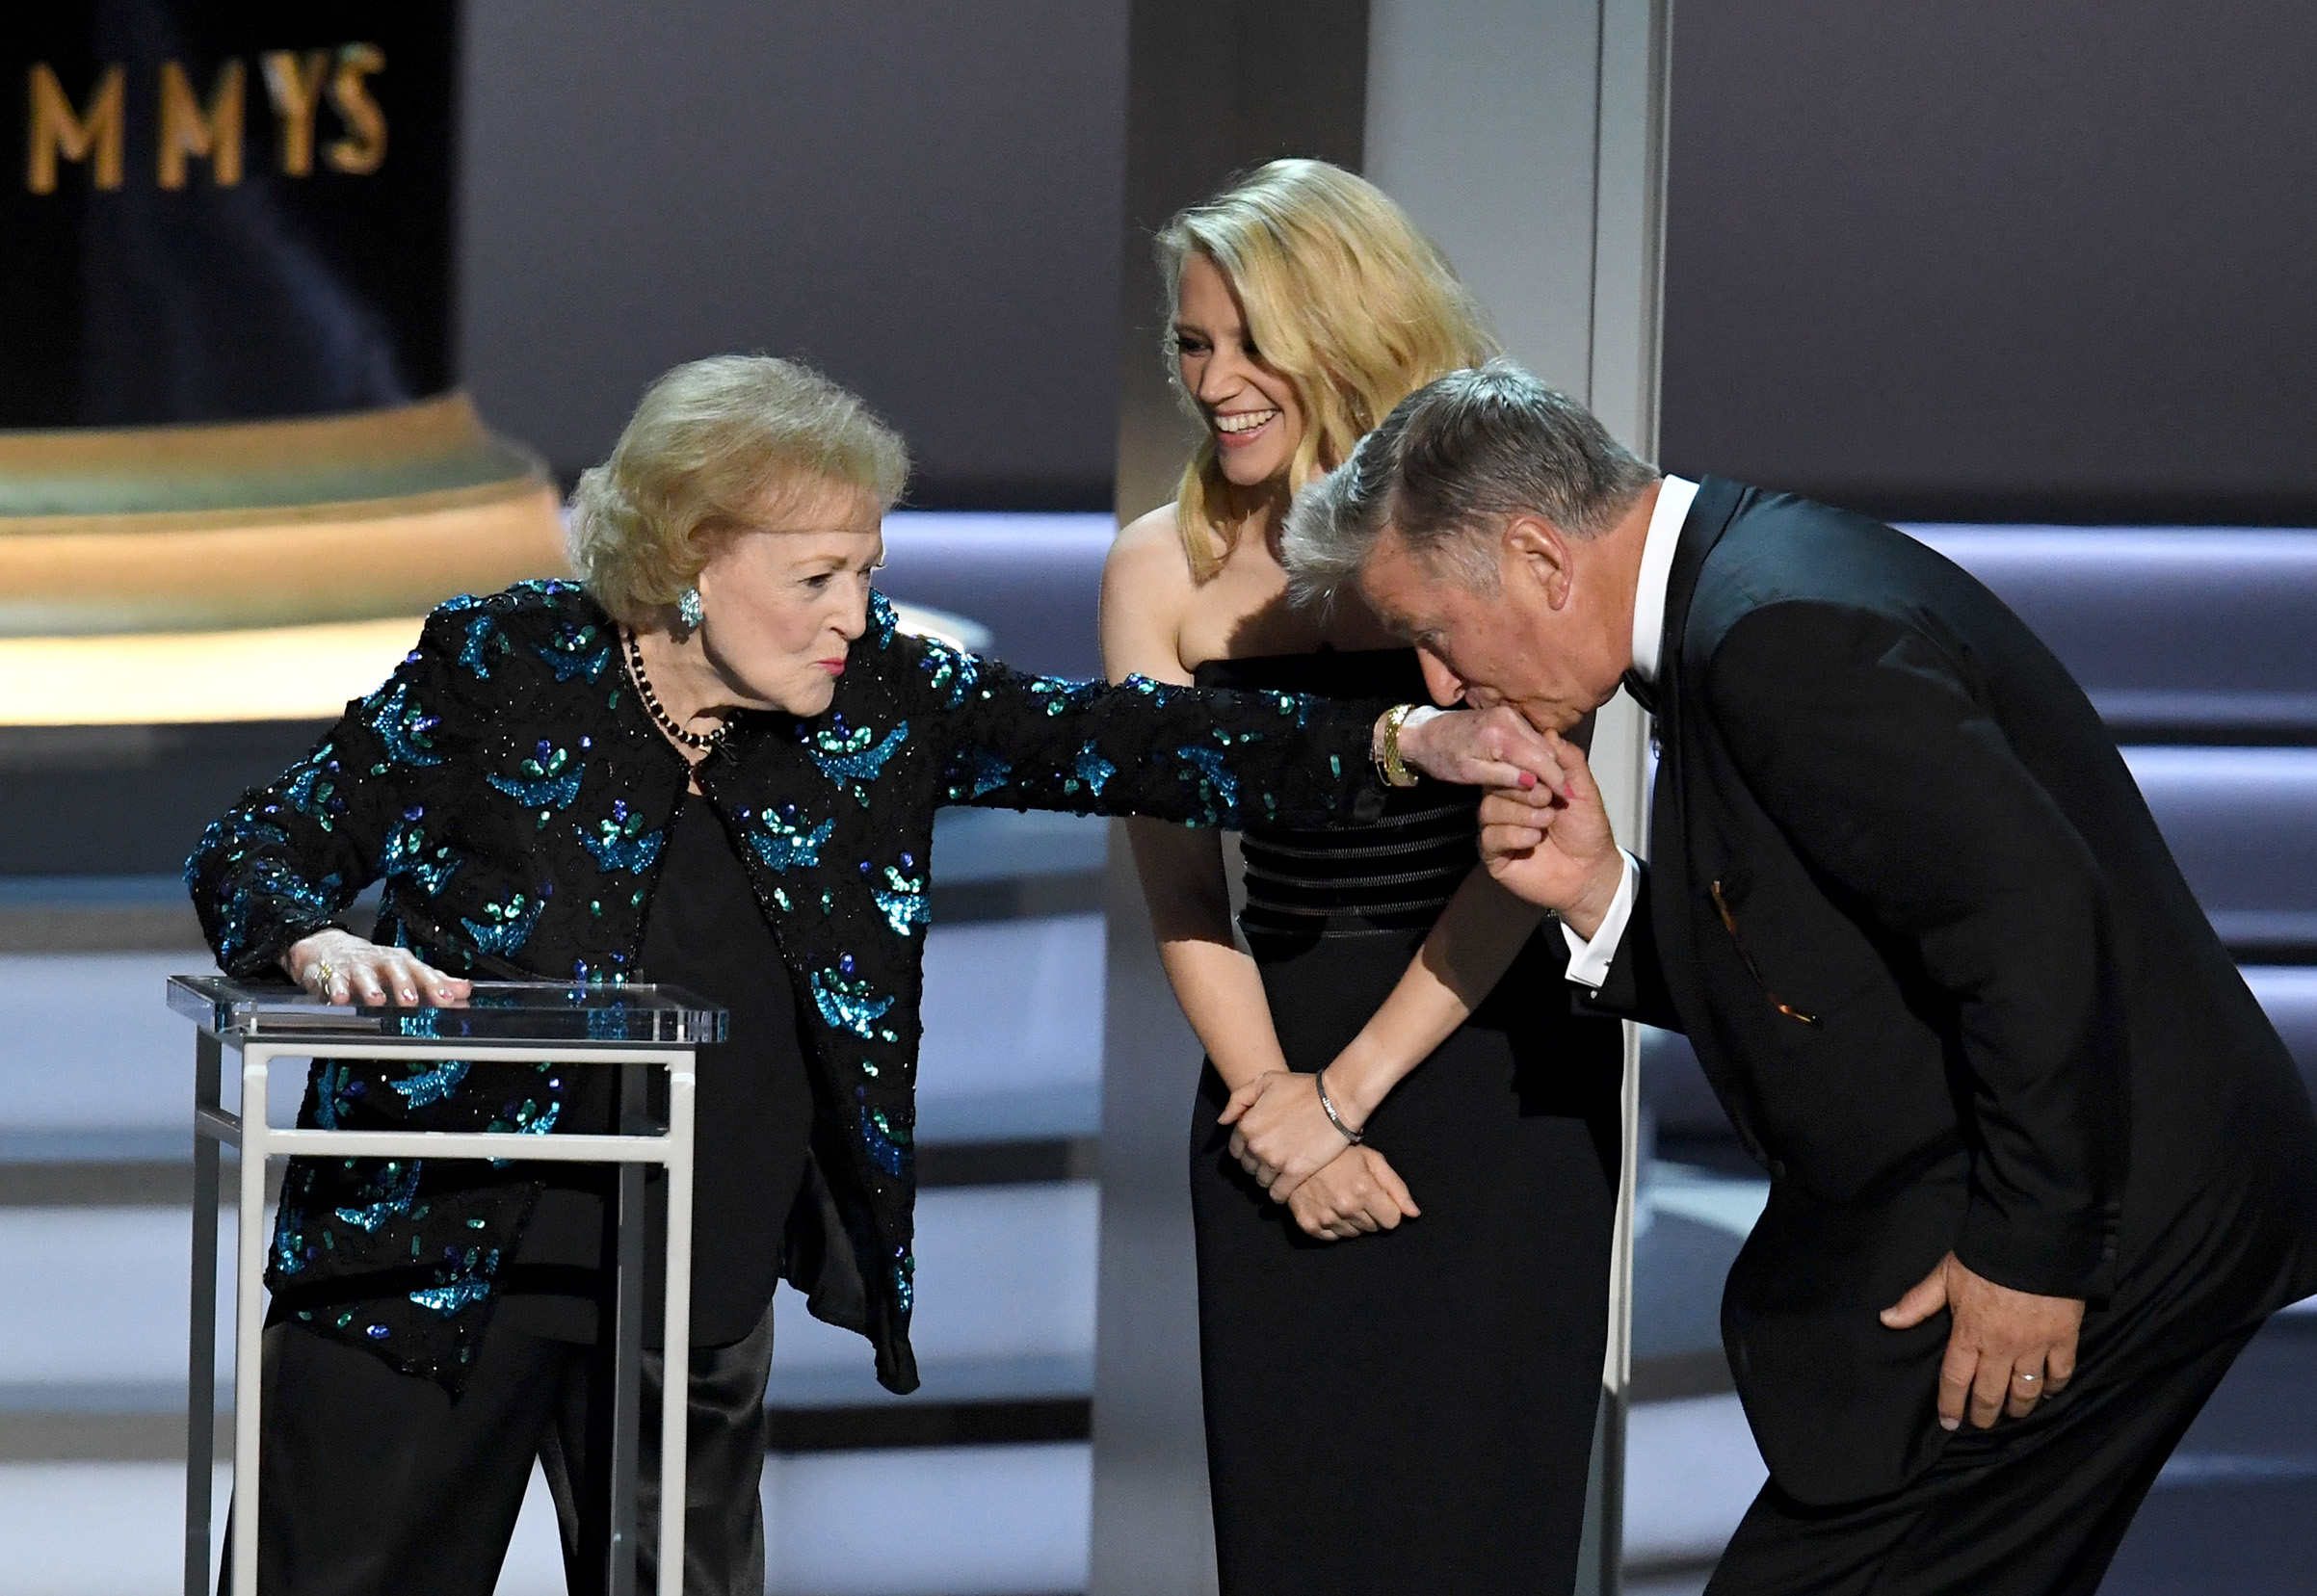 Betty White, Kate McKinnon, and Alec Baldwin speak onstage during the 70th Emmy Awards at Microsoft Theater on Sept. 17, 2018 in Los Angeles.